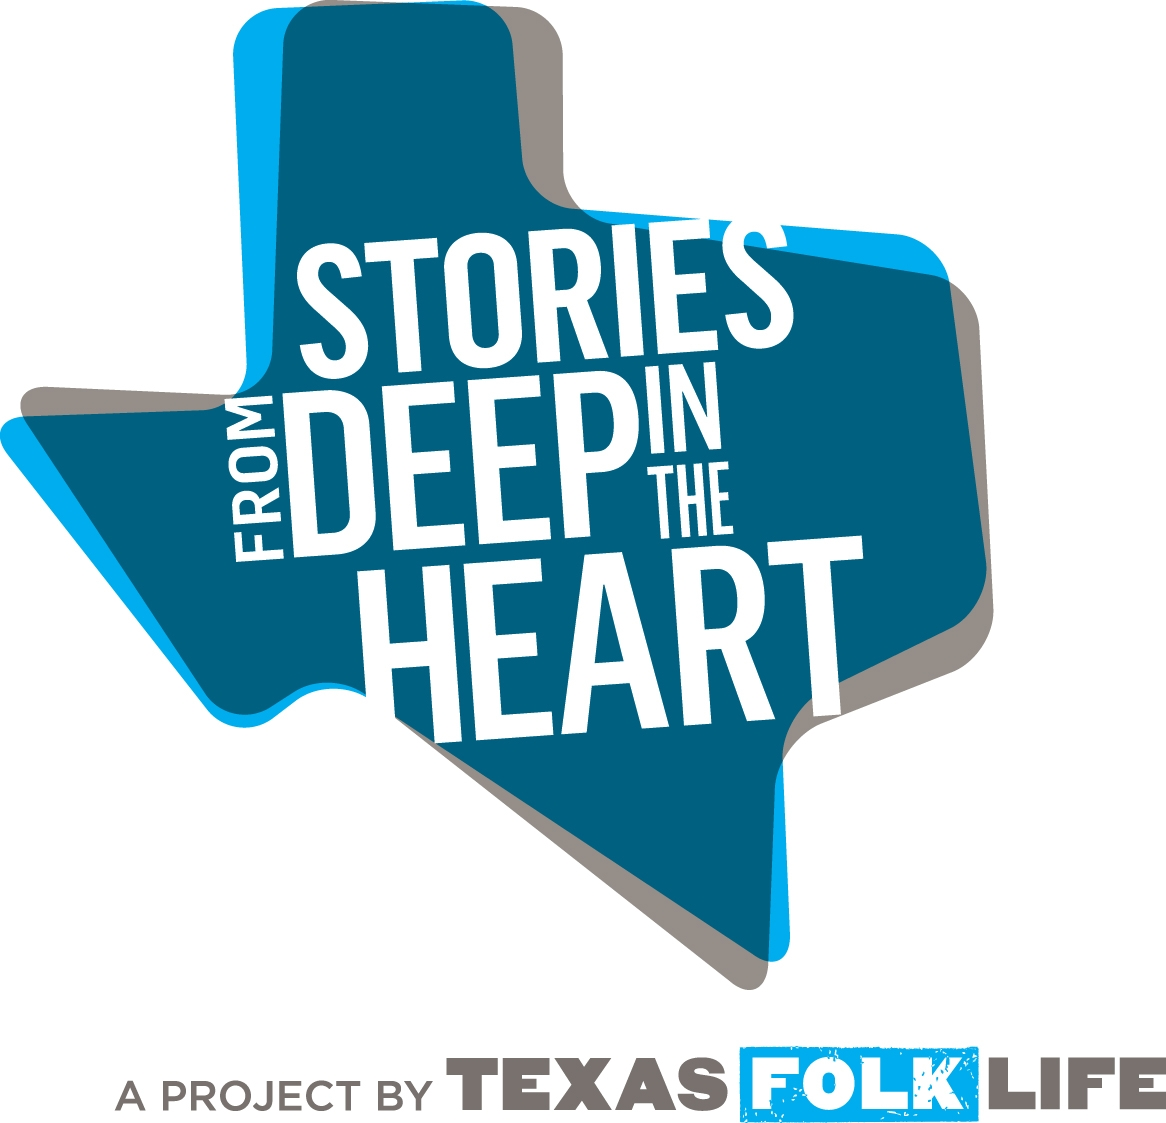 Stories from Deep in the Heart